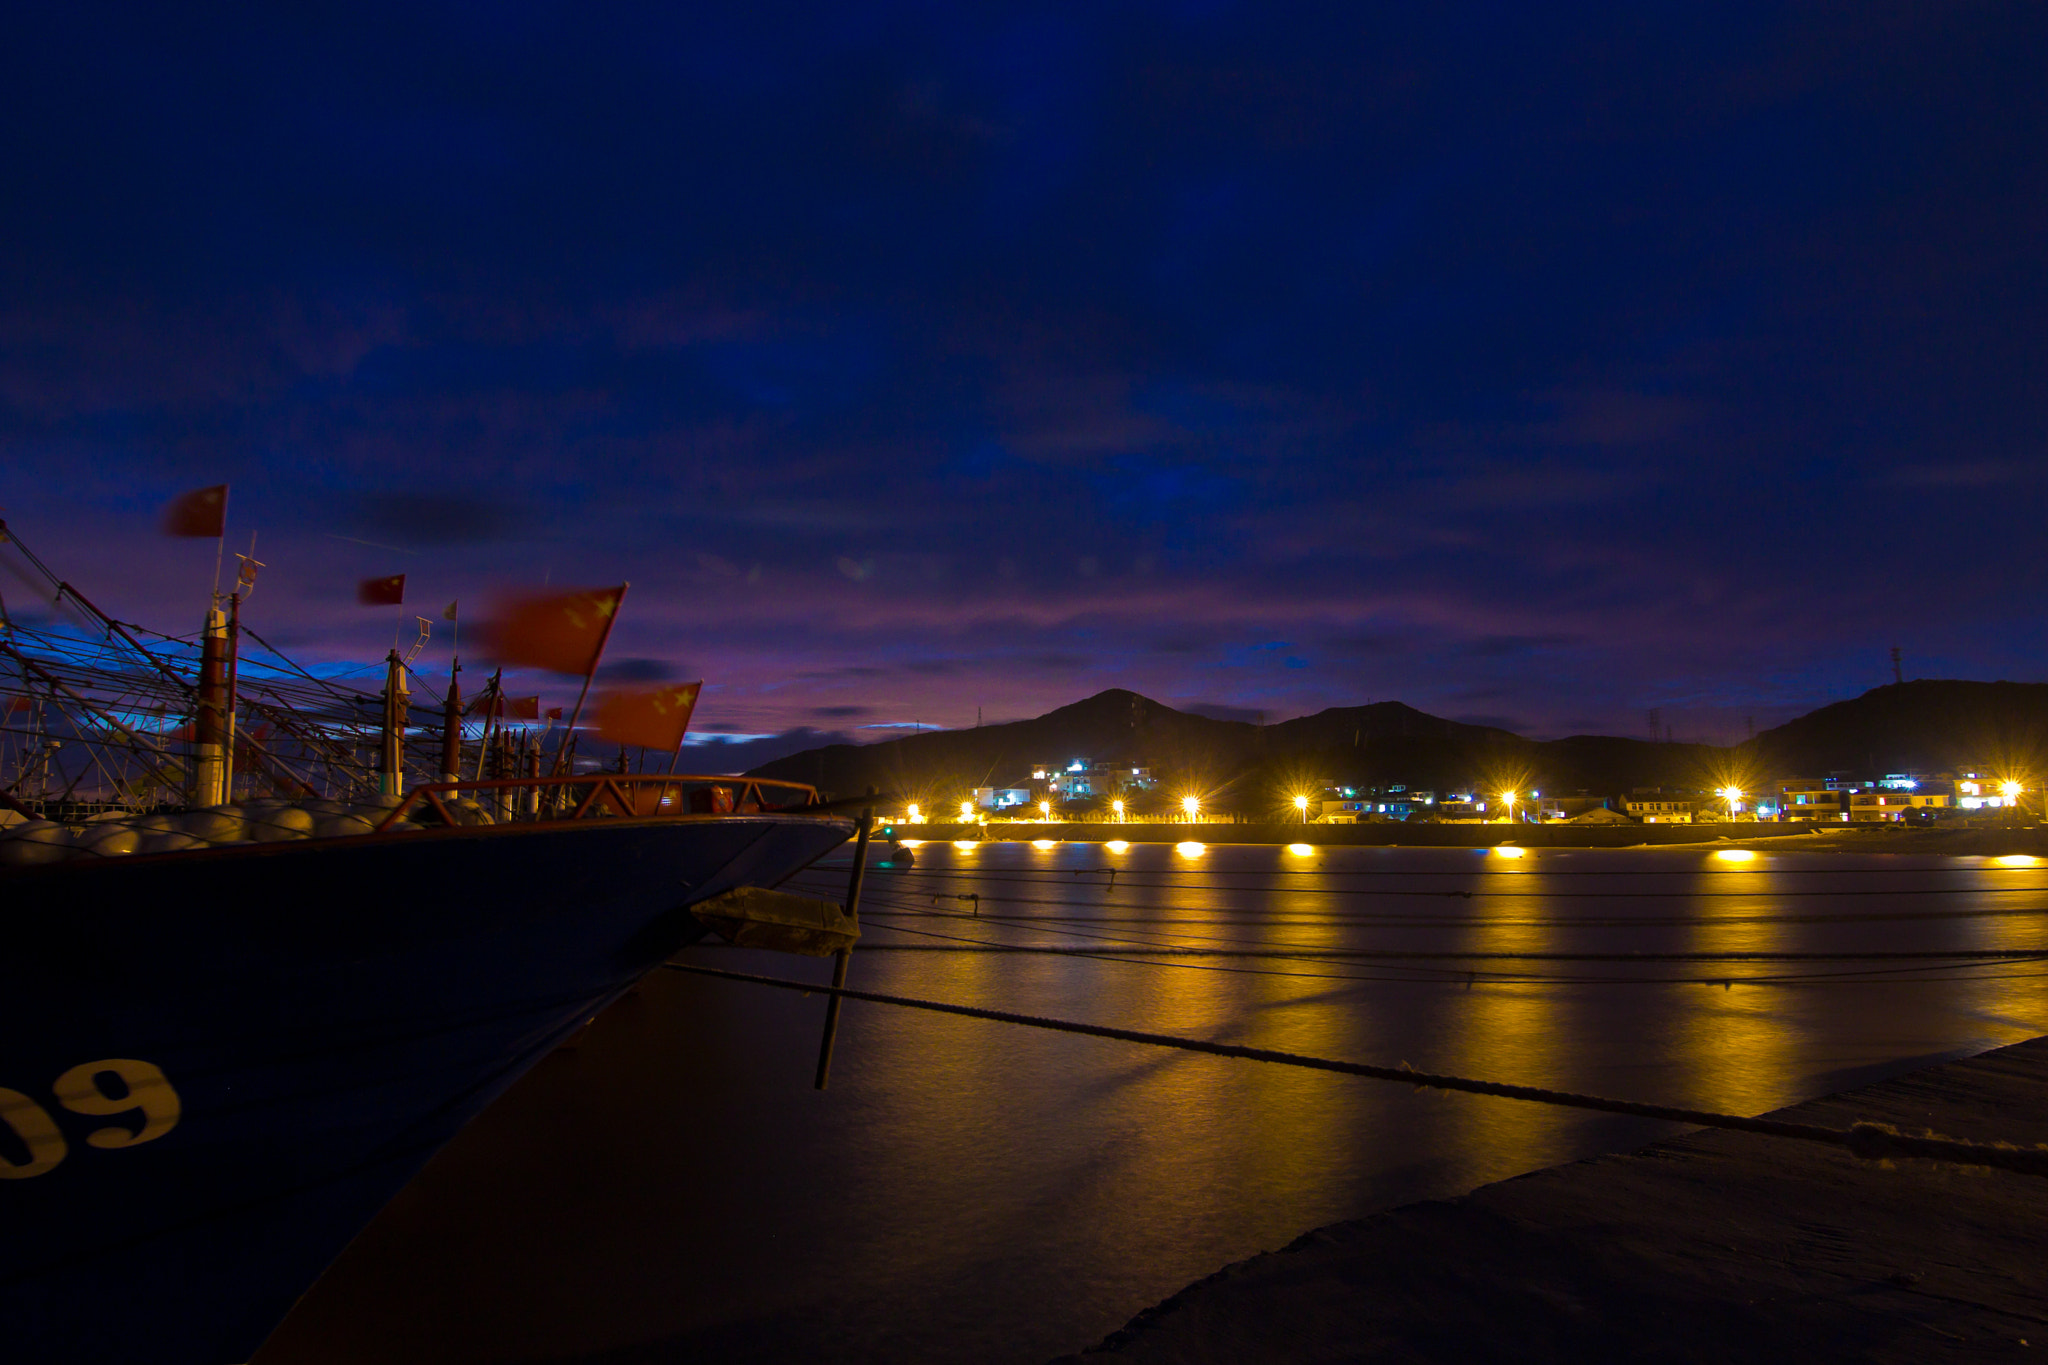 Photograph night at a fishingport by carlos-p on 500px